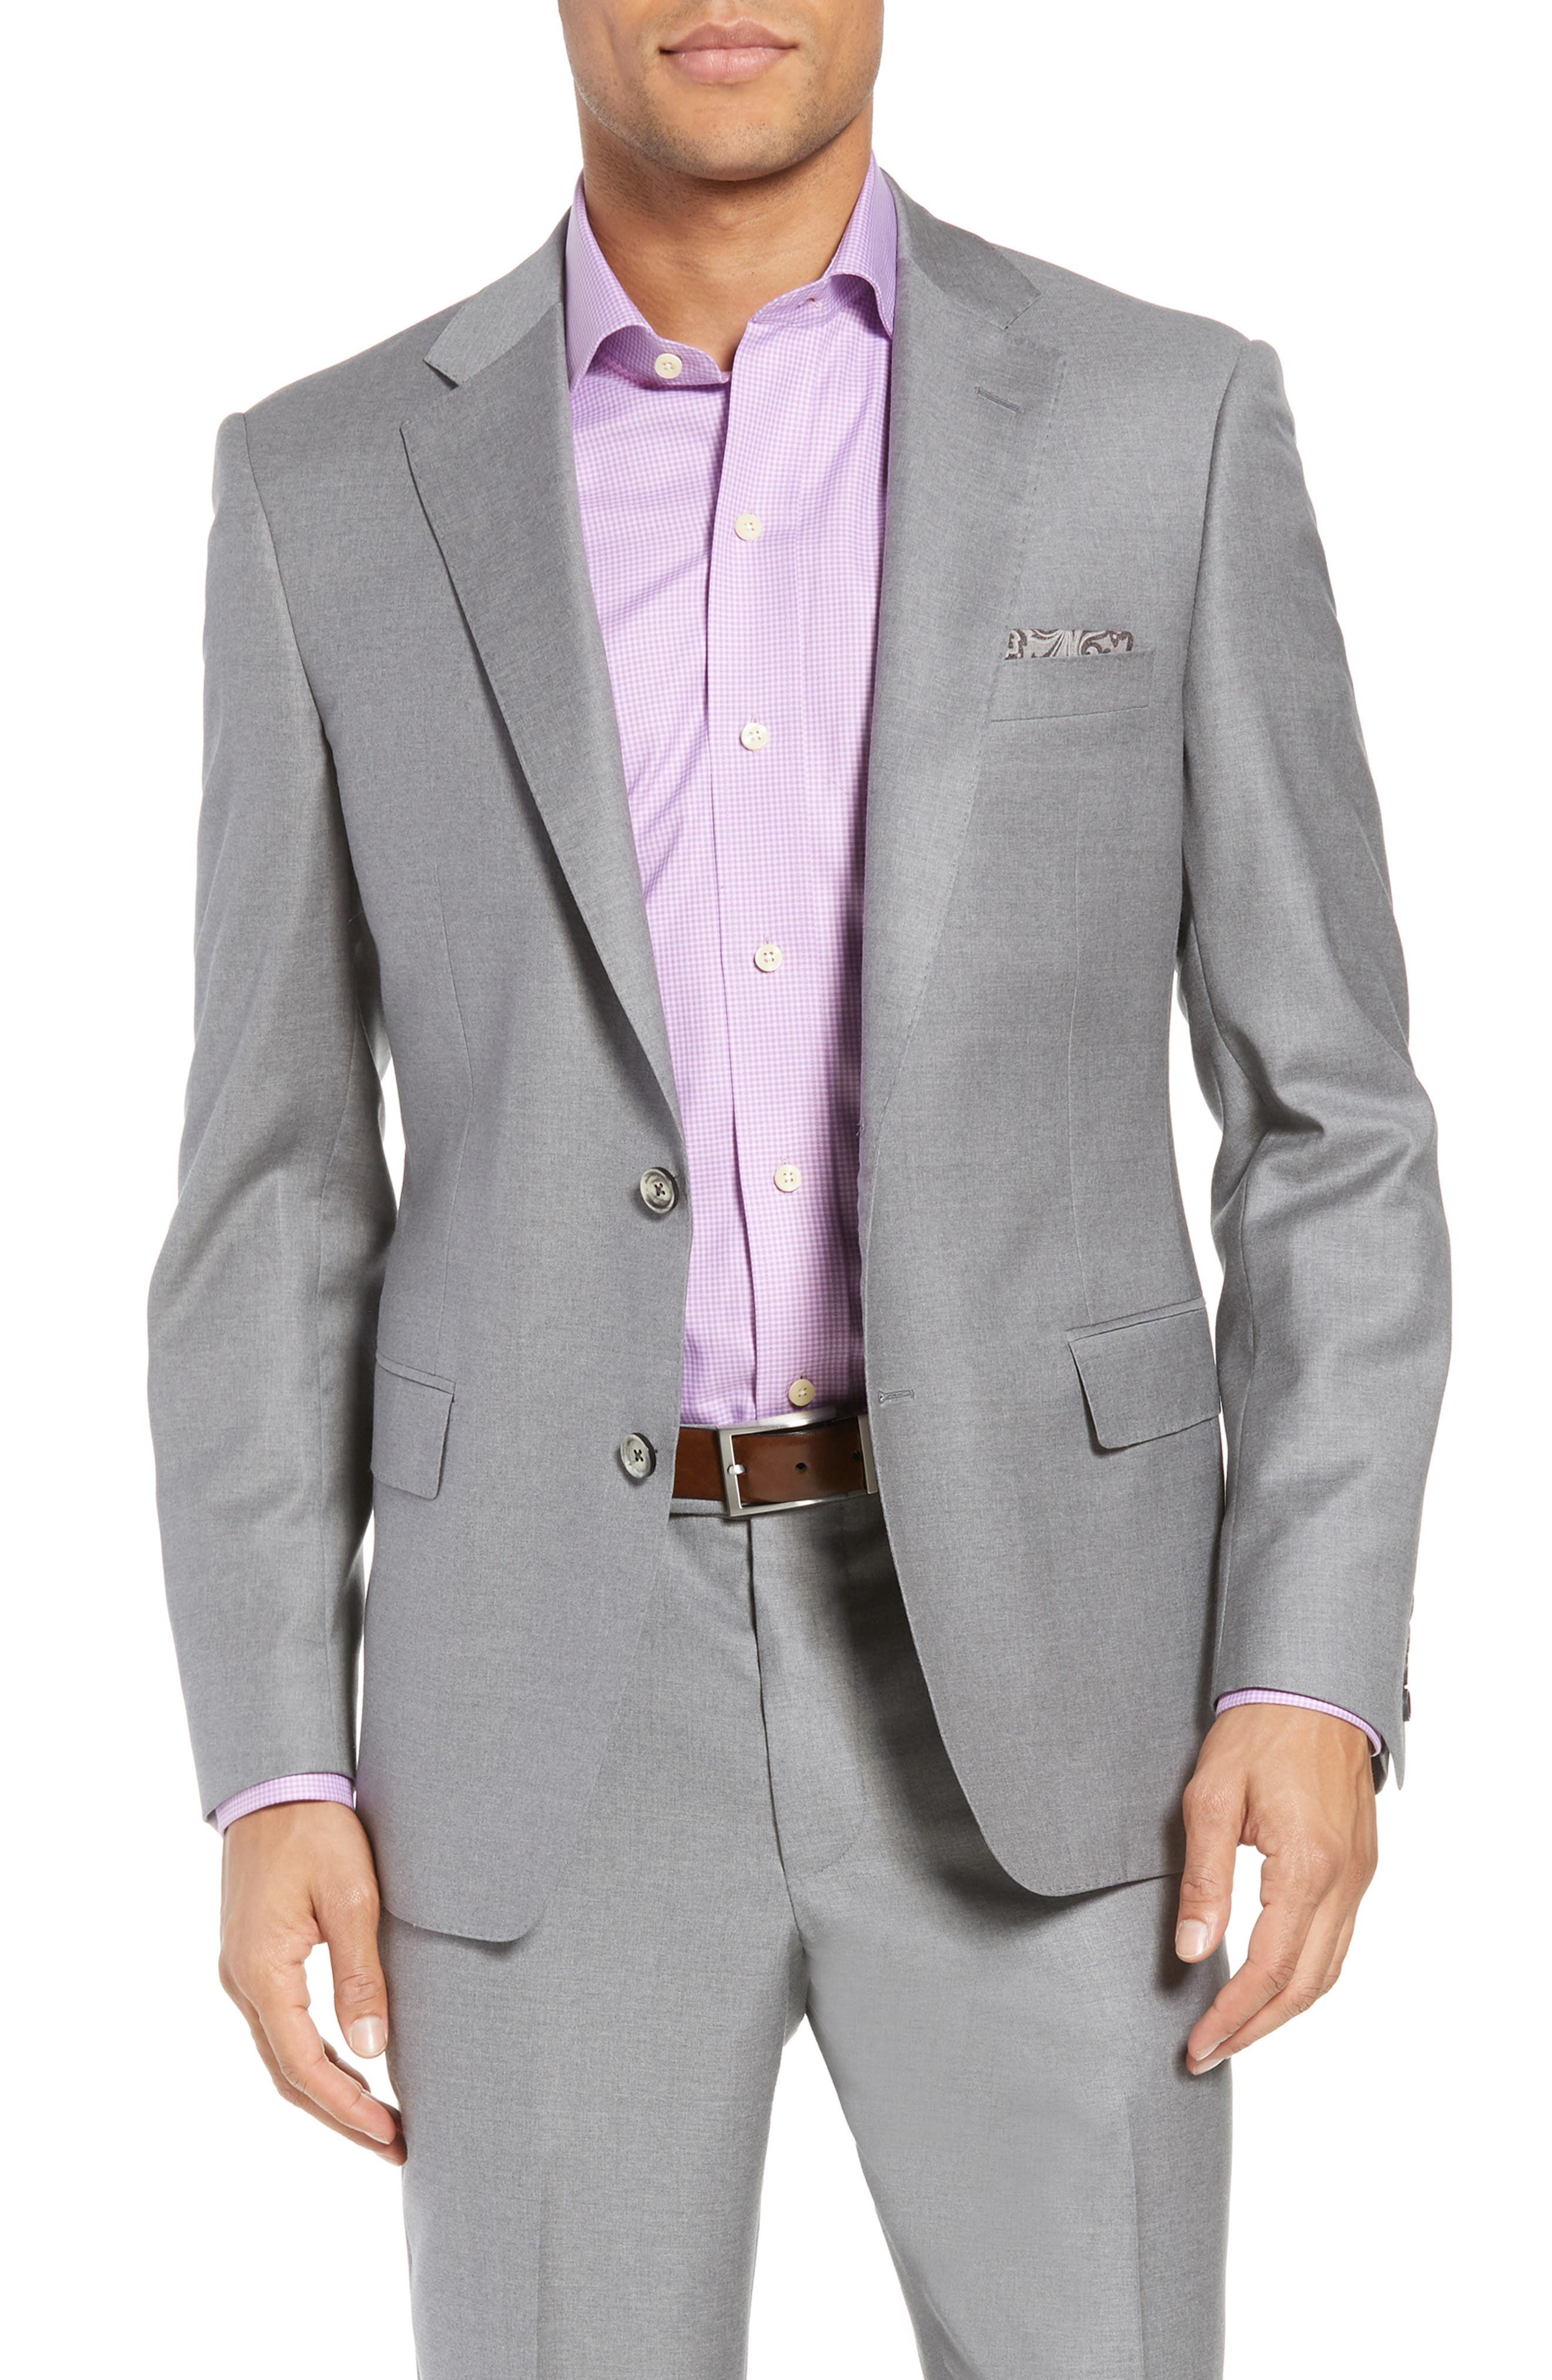 Bennet Classic Fit Solid Wool Suit,                             Alternate thumbnail 5, color,                             Light Grey